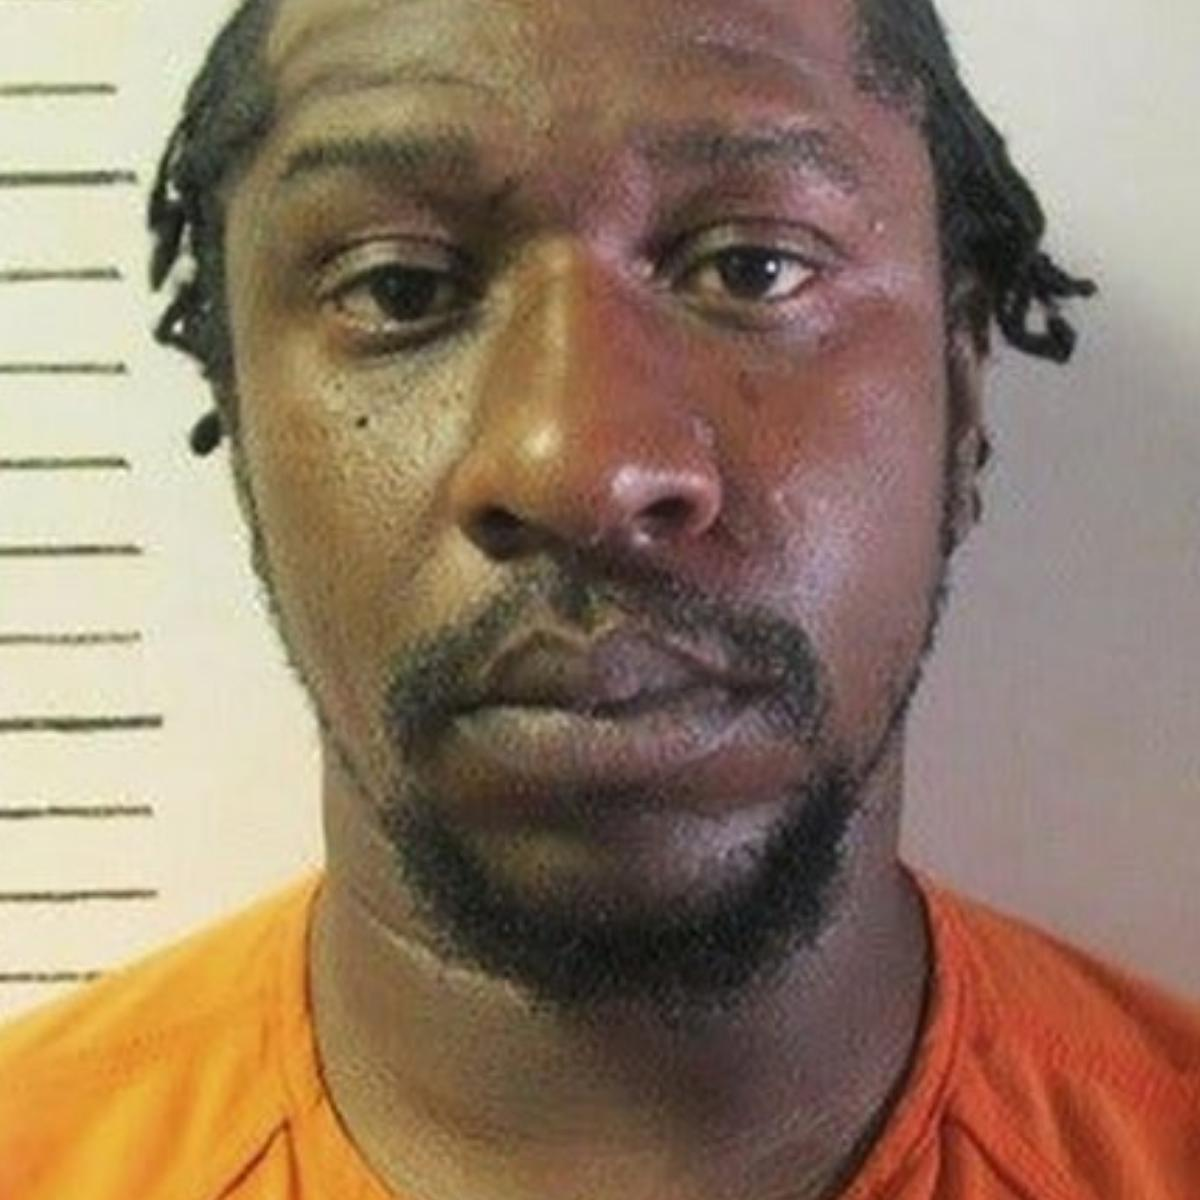 South Carolina Man Sentenced For Impregnating 10-Year-Old